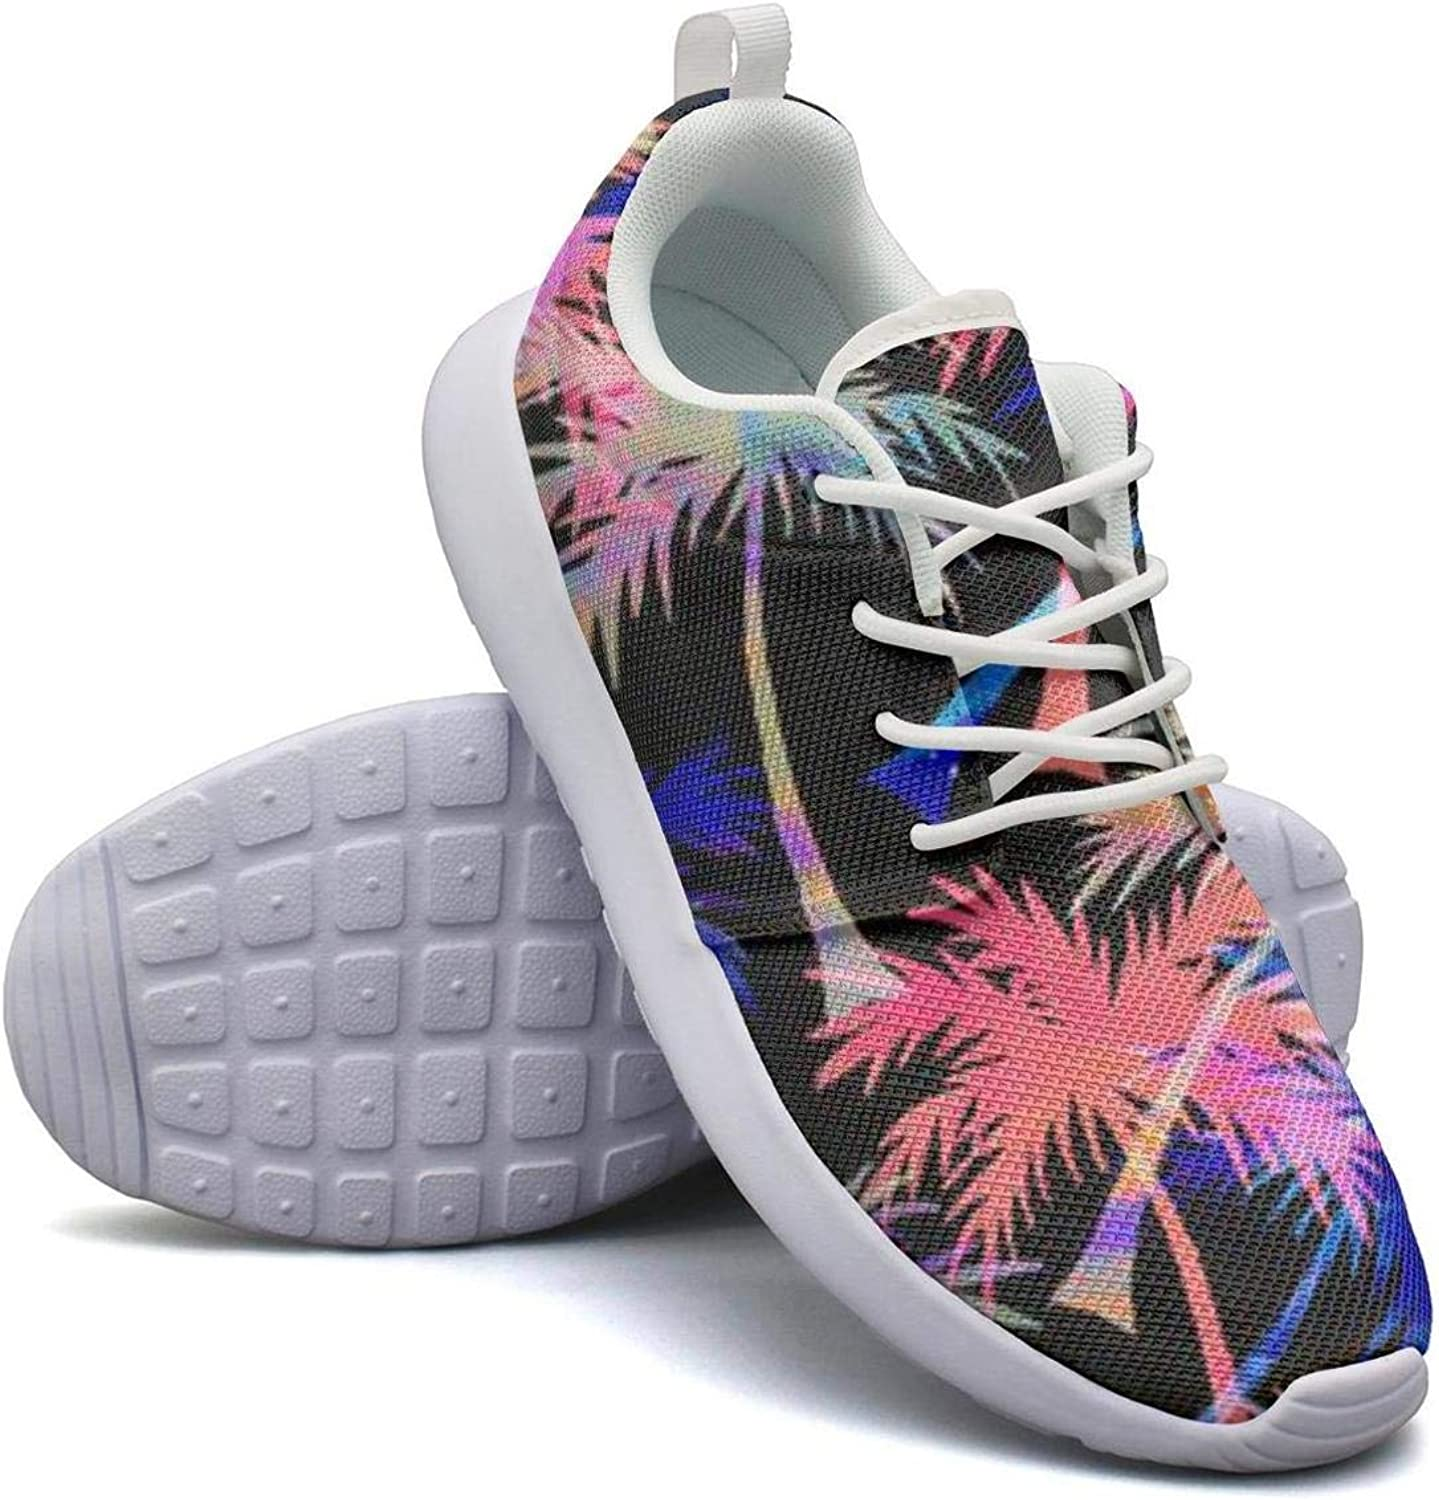 Comfort Woman Lightweight Mesh shoes coloring Palm Trees Sneakers Walking Shock Absorbing